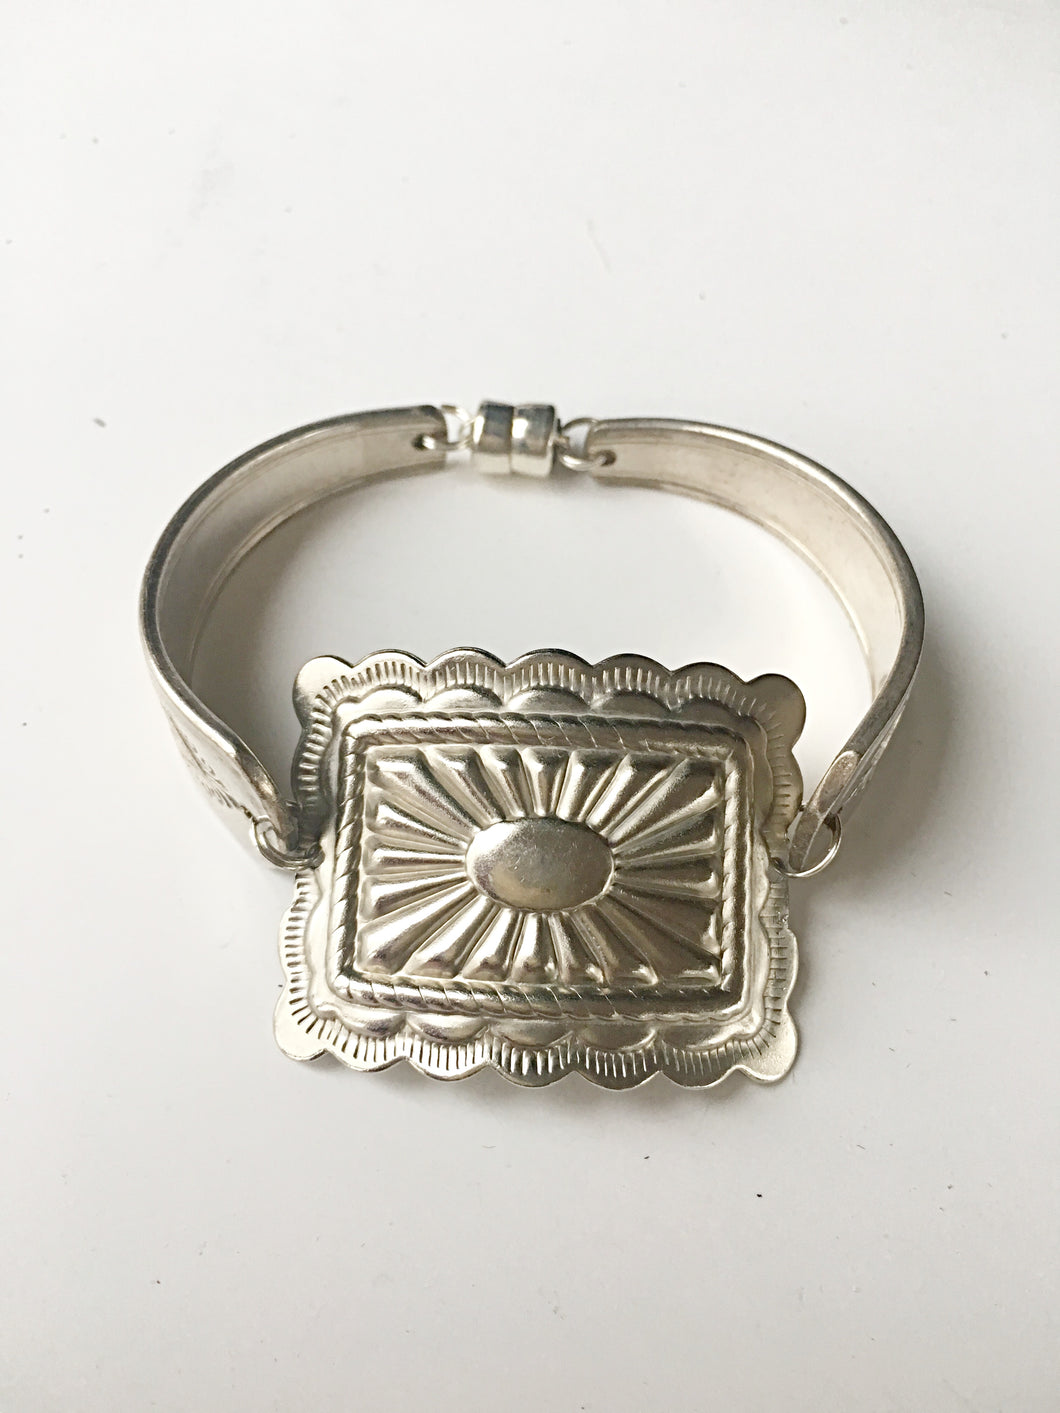 Antique Silverware Bracelet with large square concho